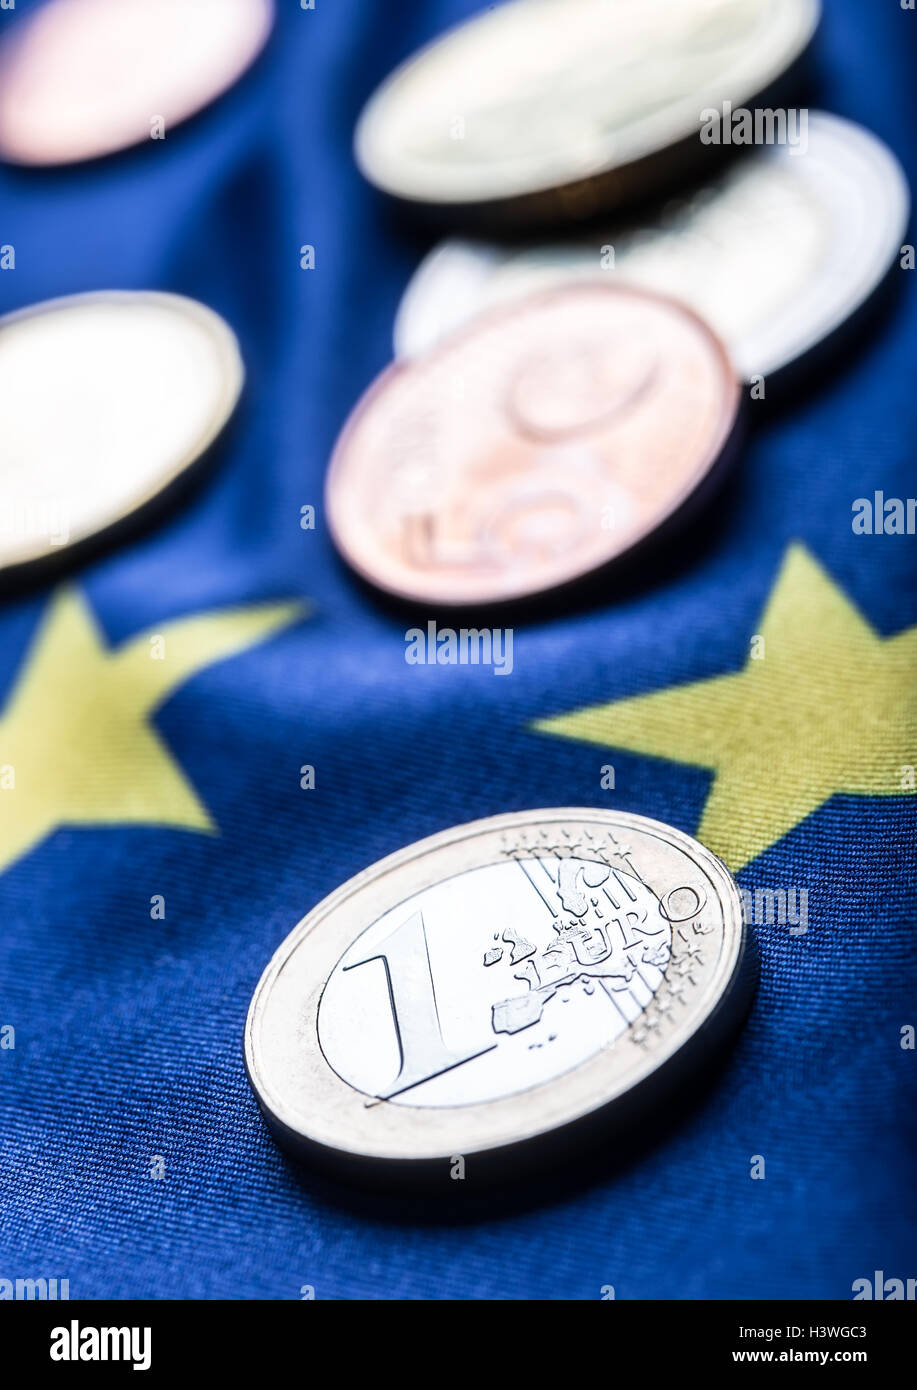 Euro coins. Euro currency. Euro money. European flag and euro money. Coins and banknotes European currency freely - Stock Image